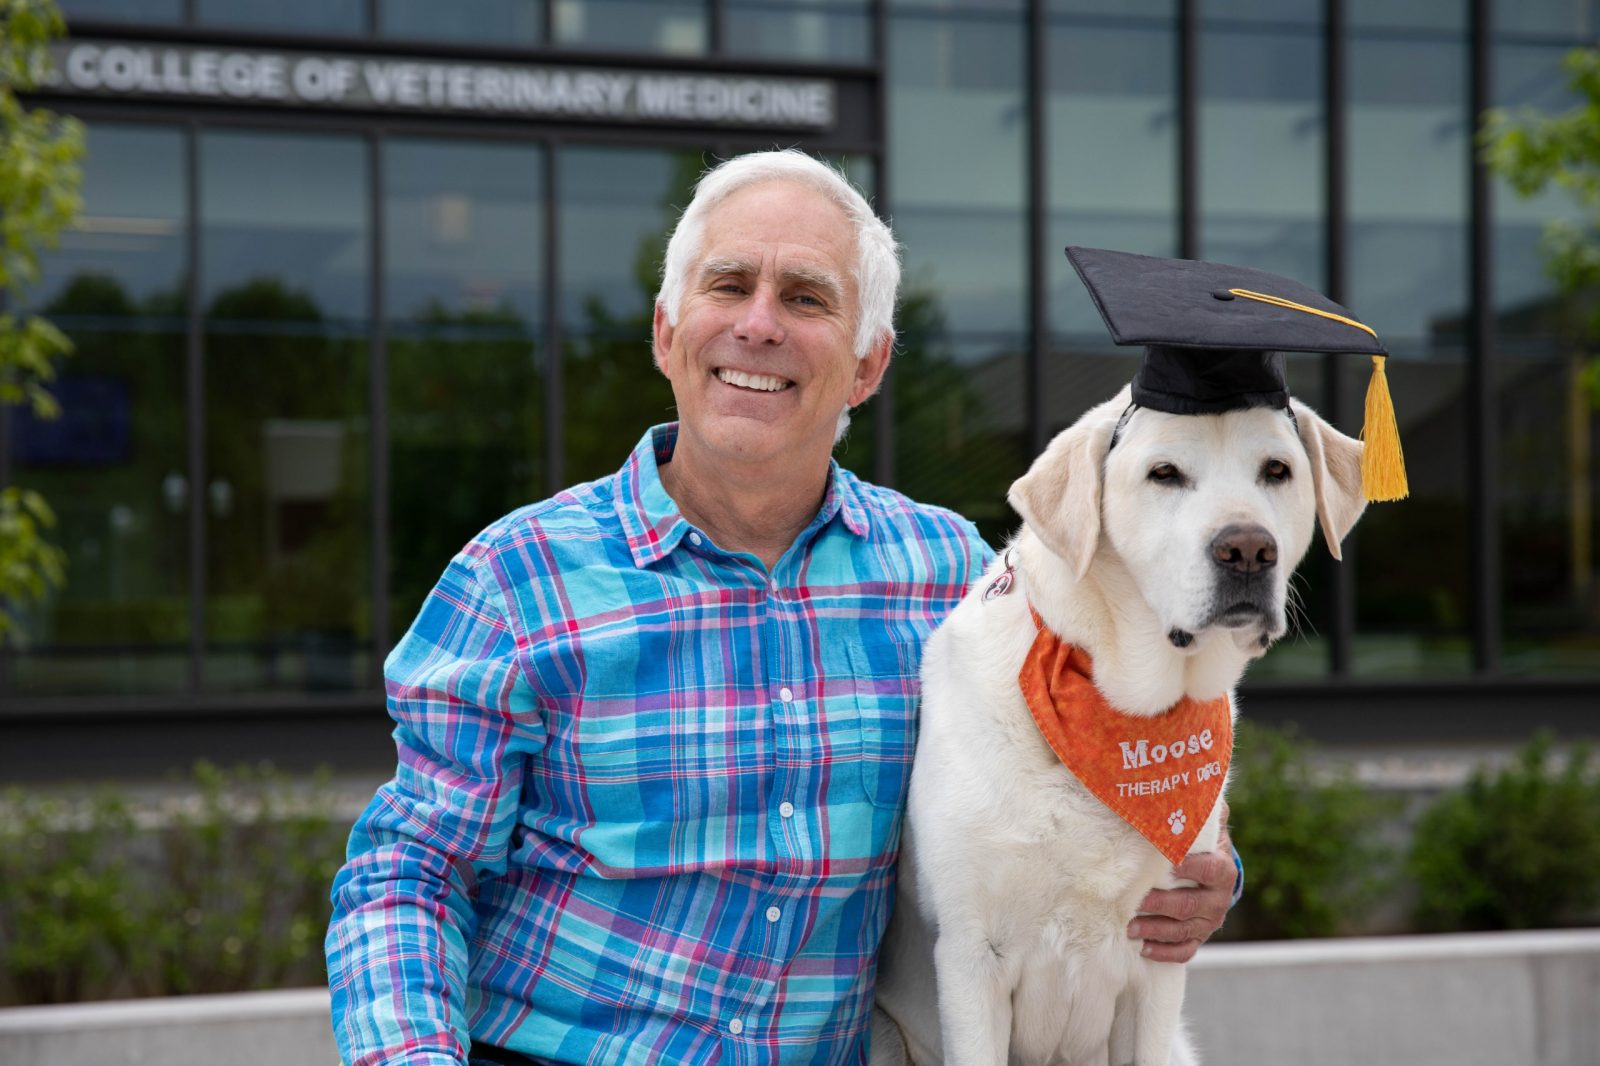 Moose, a yellow lab and therapy dog wearing a graduation cap, poses with owner/handler Trent Davis.